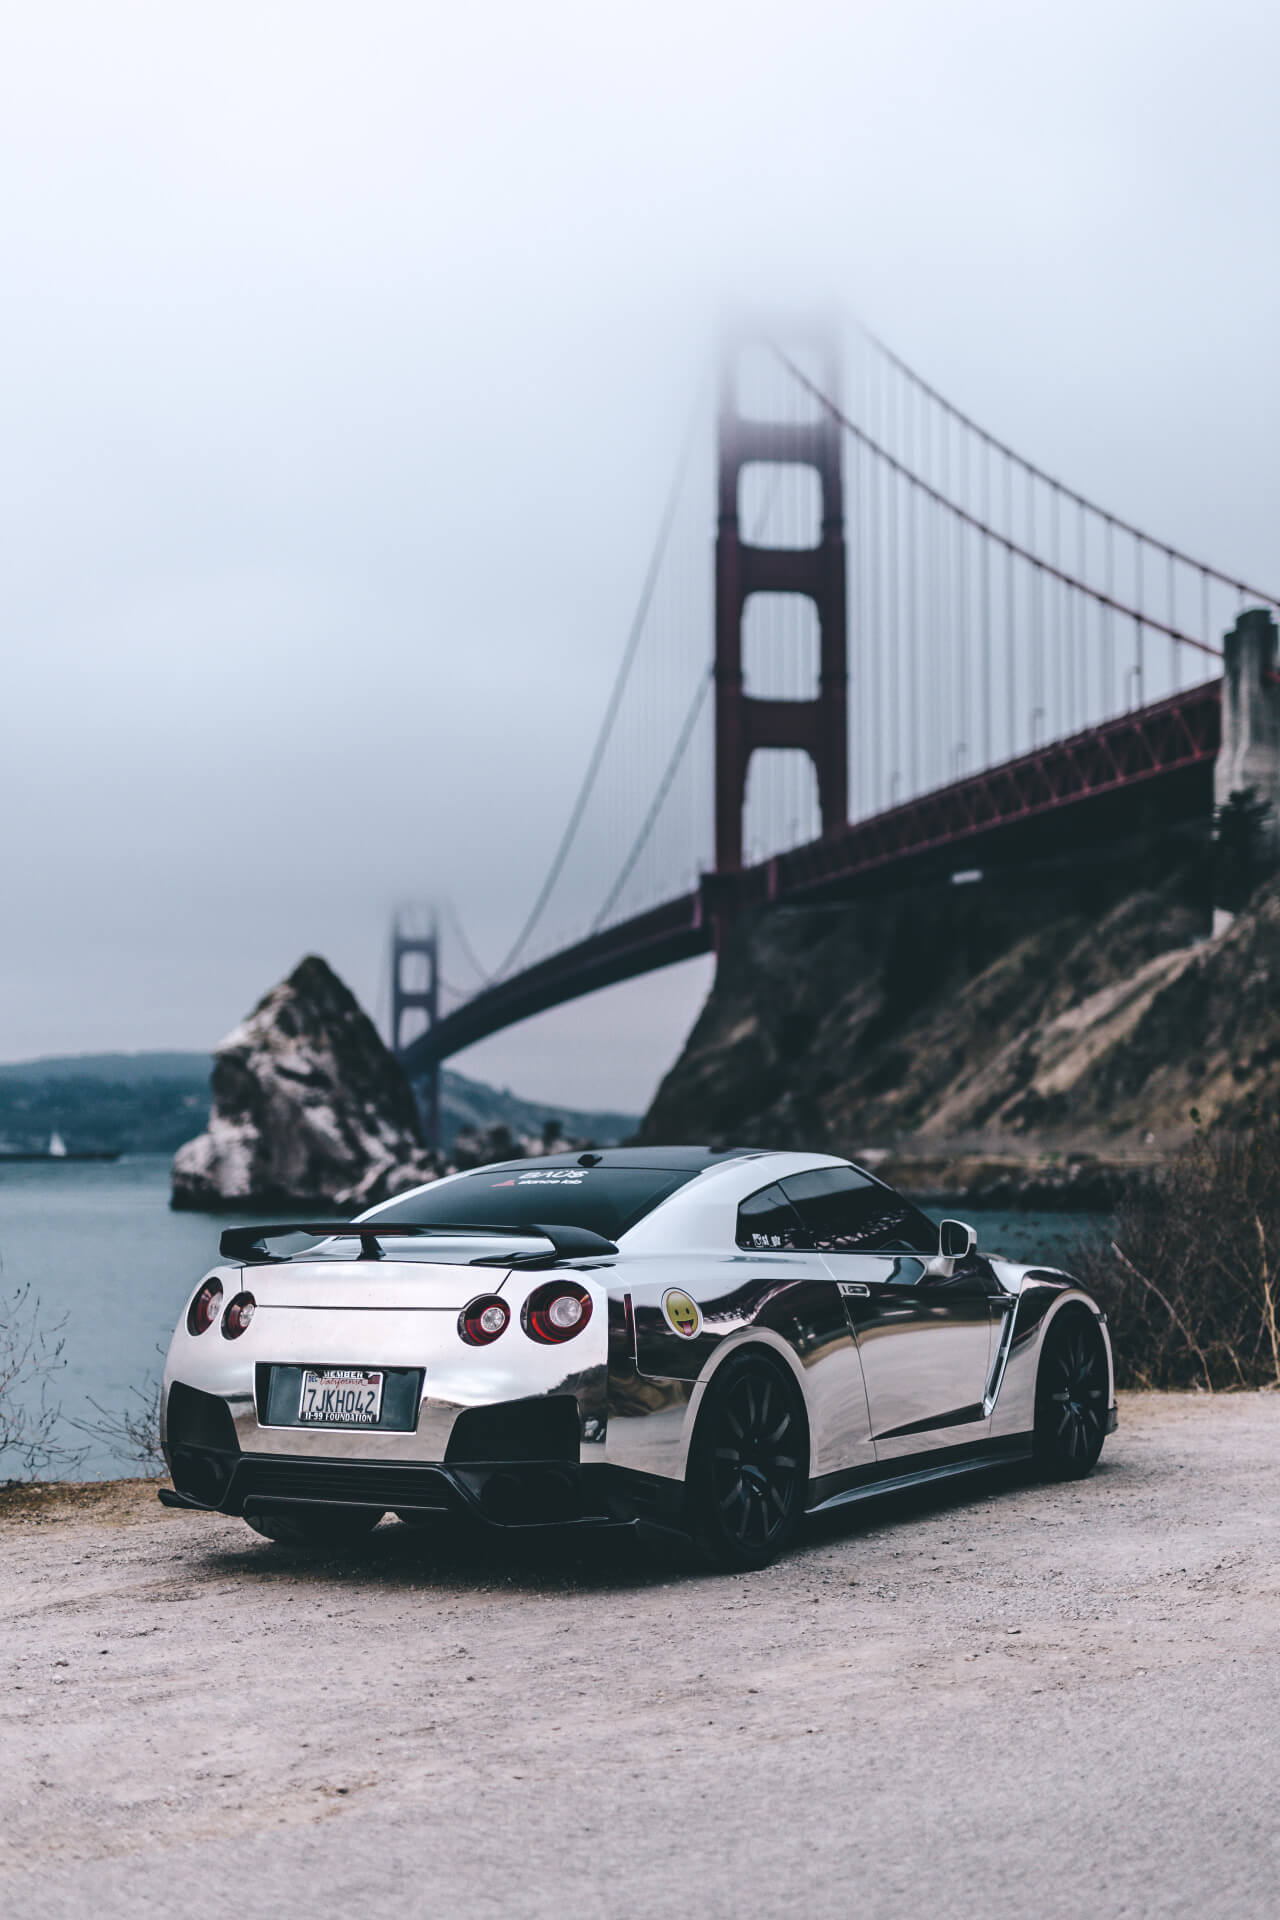 Nissan-GT-R-Chrome-Phone-nissan-phone-gtr-wallpaper-wp5808273